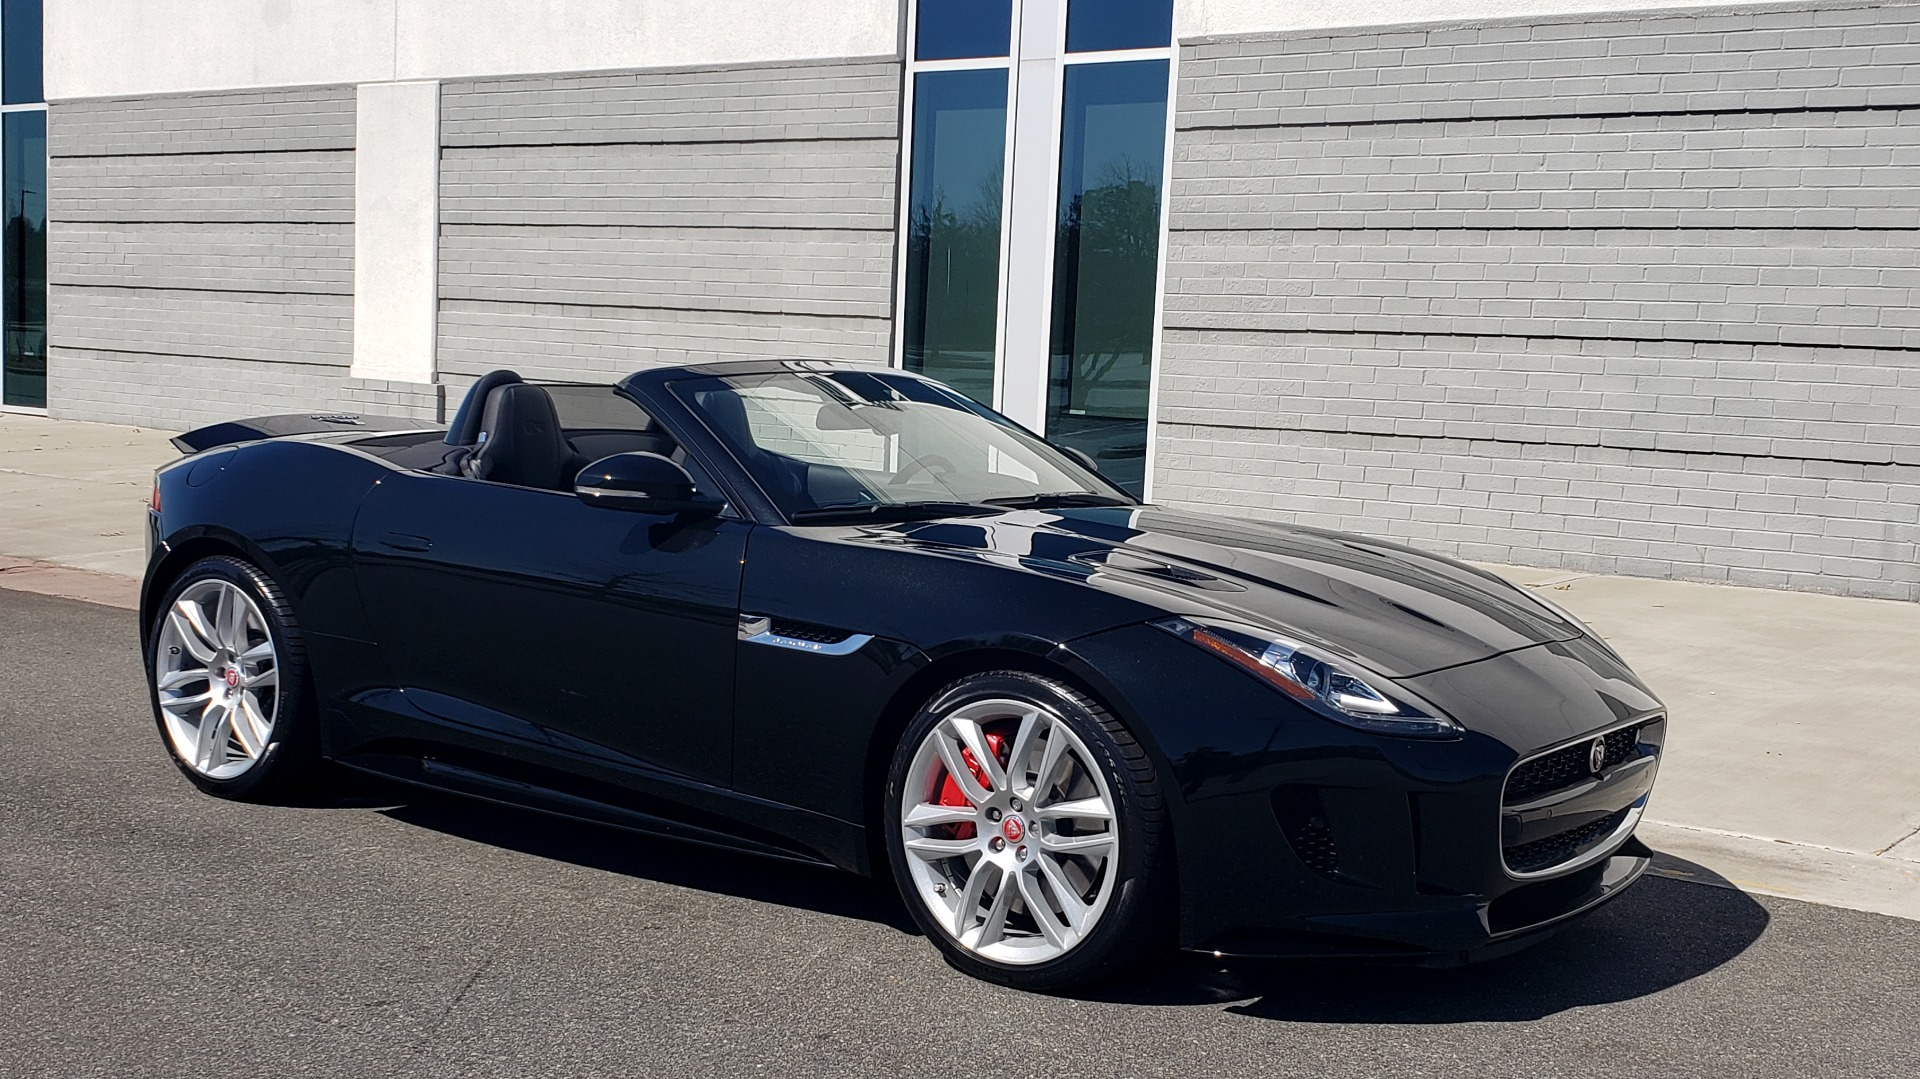 Used 2016 Jaguar F-TYPE R CONVERTIBLE / SC 5.0L 550HP / VISION PACK 3 / BSM / REARVIEW for sale $63,000 at Formula Imports in Charlotte NC 28227 10